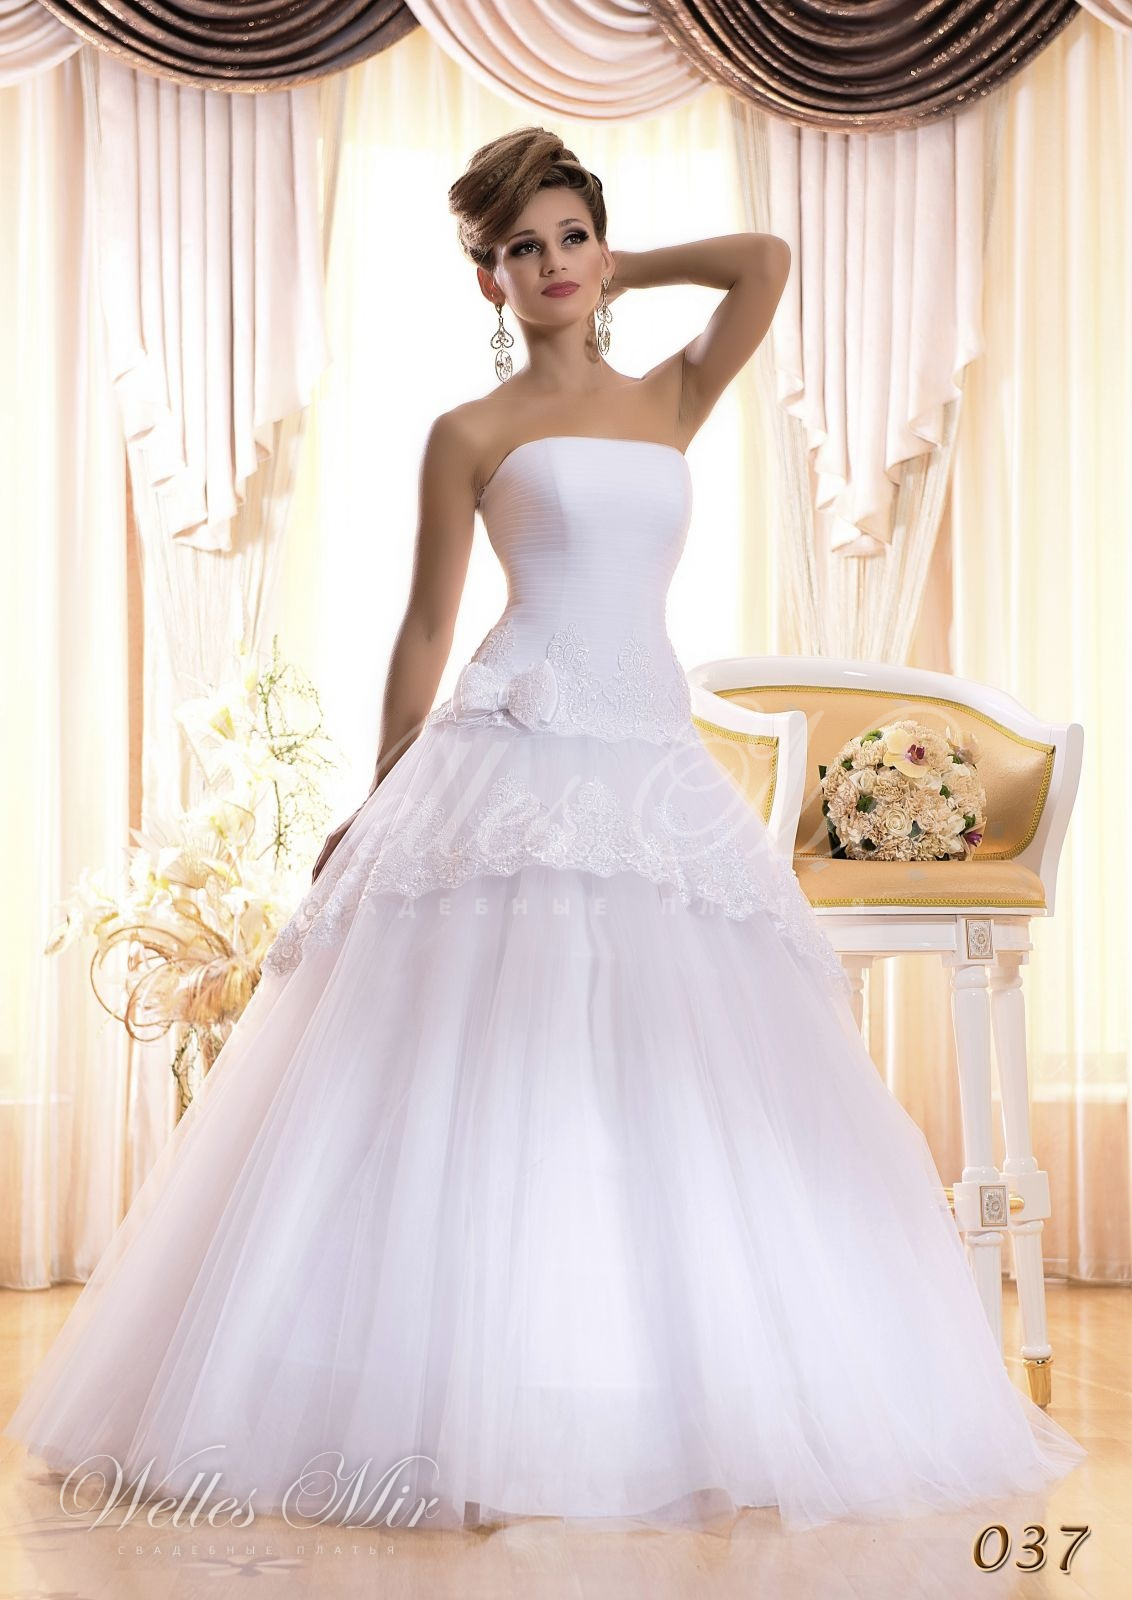 Wedding dresses 037